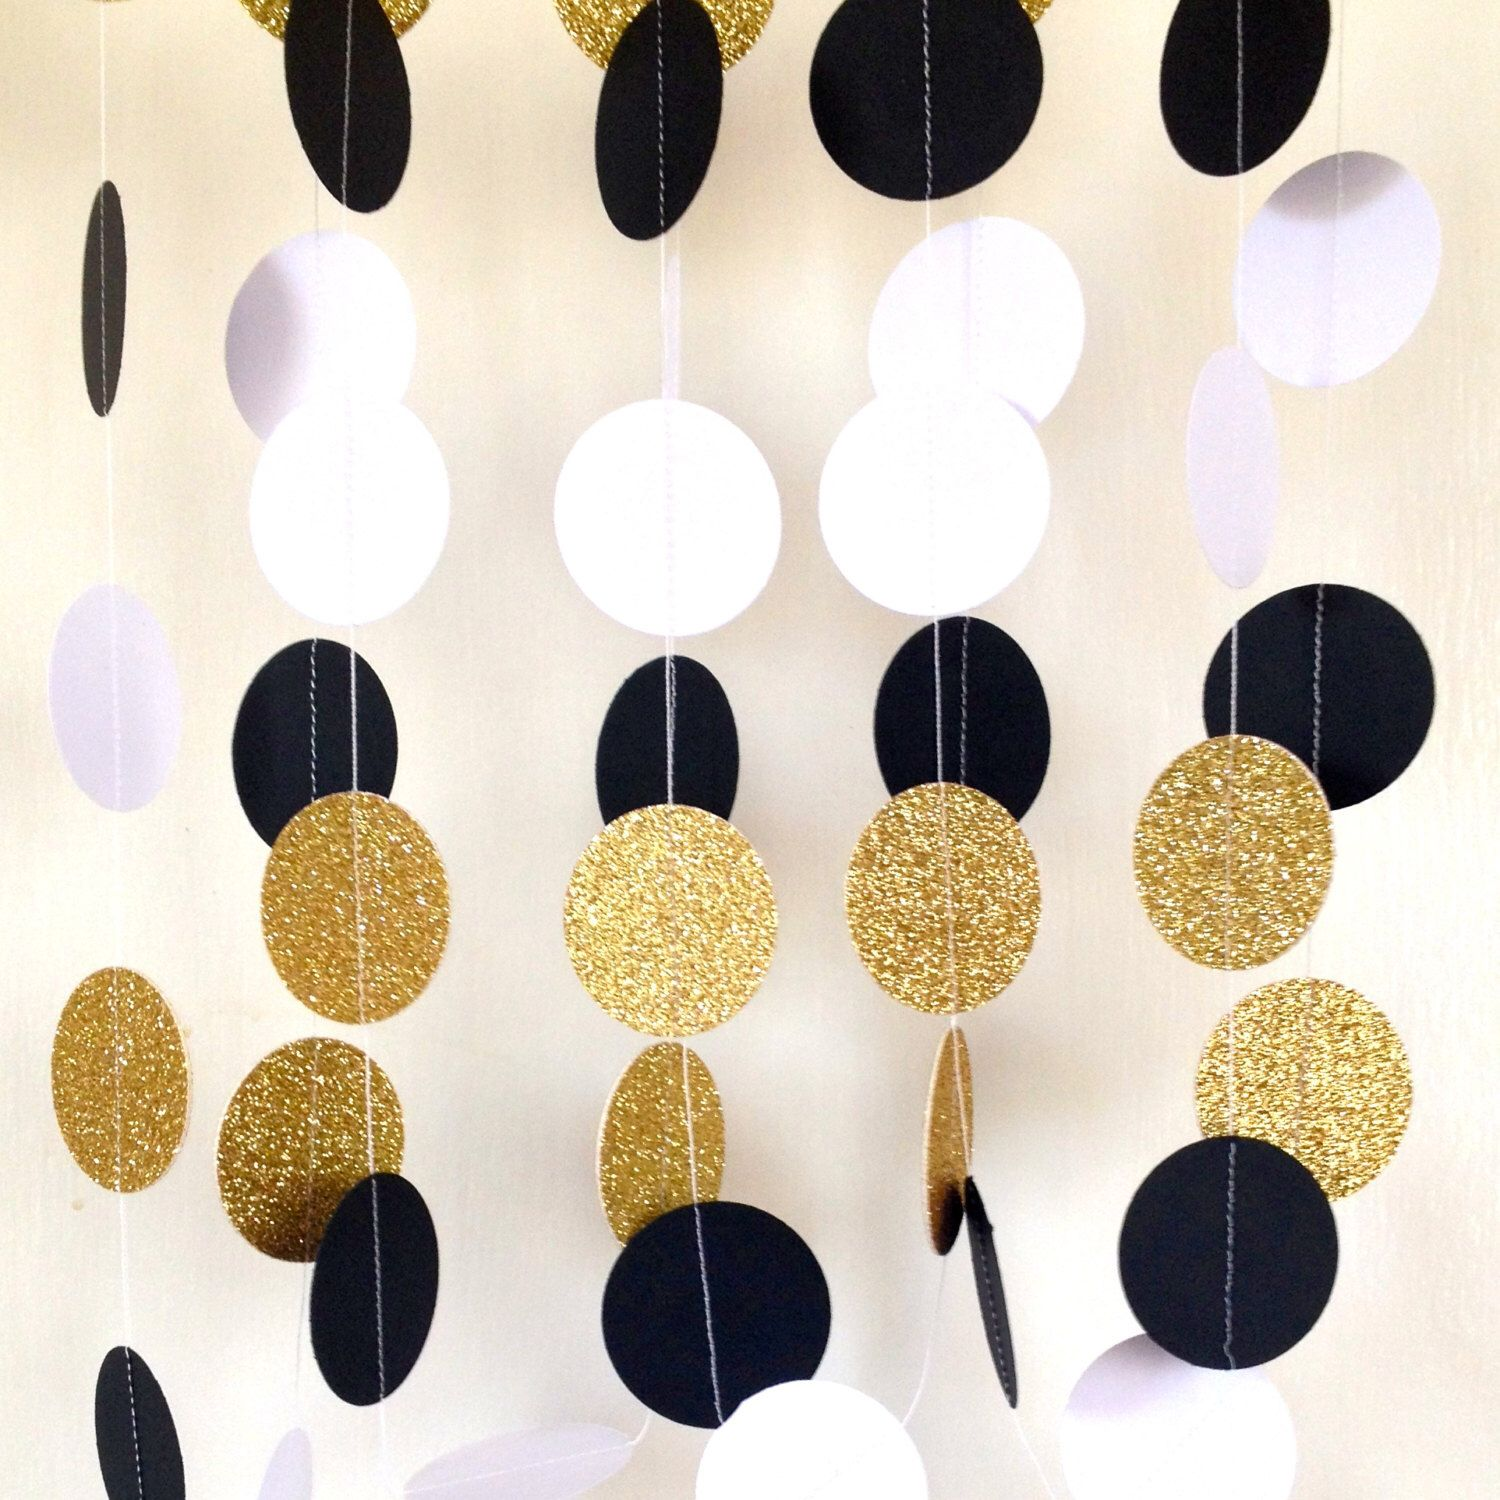 Art deco backdrop for photos wall decor party decoration 1920 s - Great Gatsby Themed Wedding Garland Paper Garland Black White Gold Bridal Shower Baby Shower